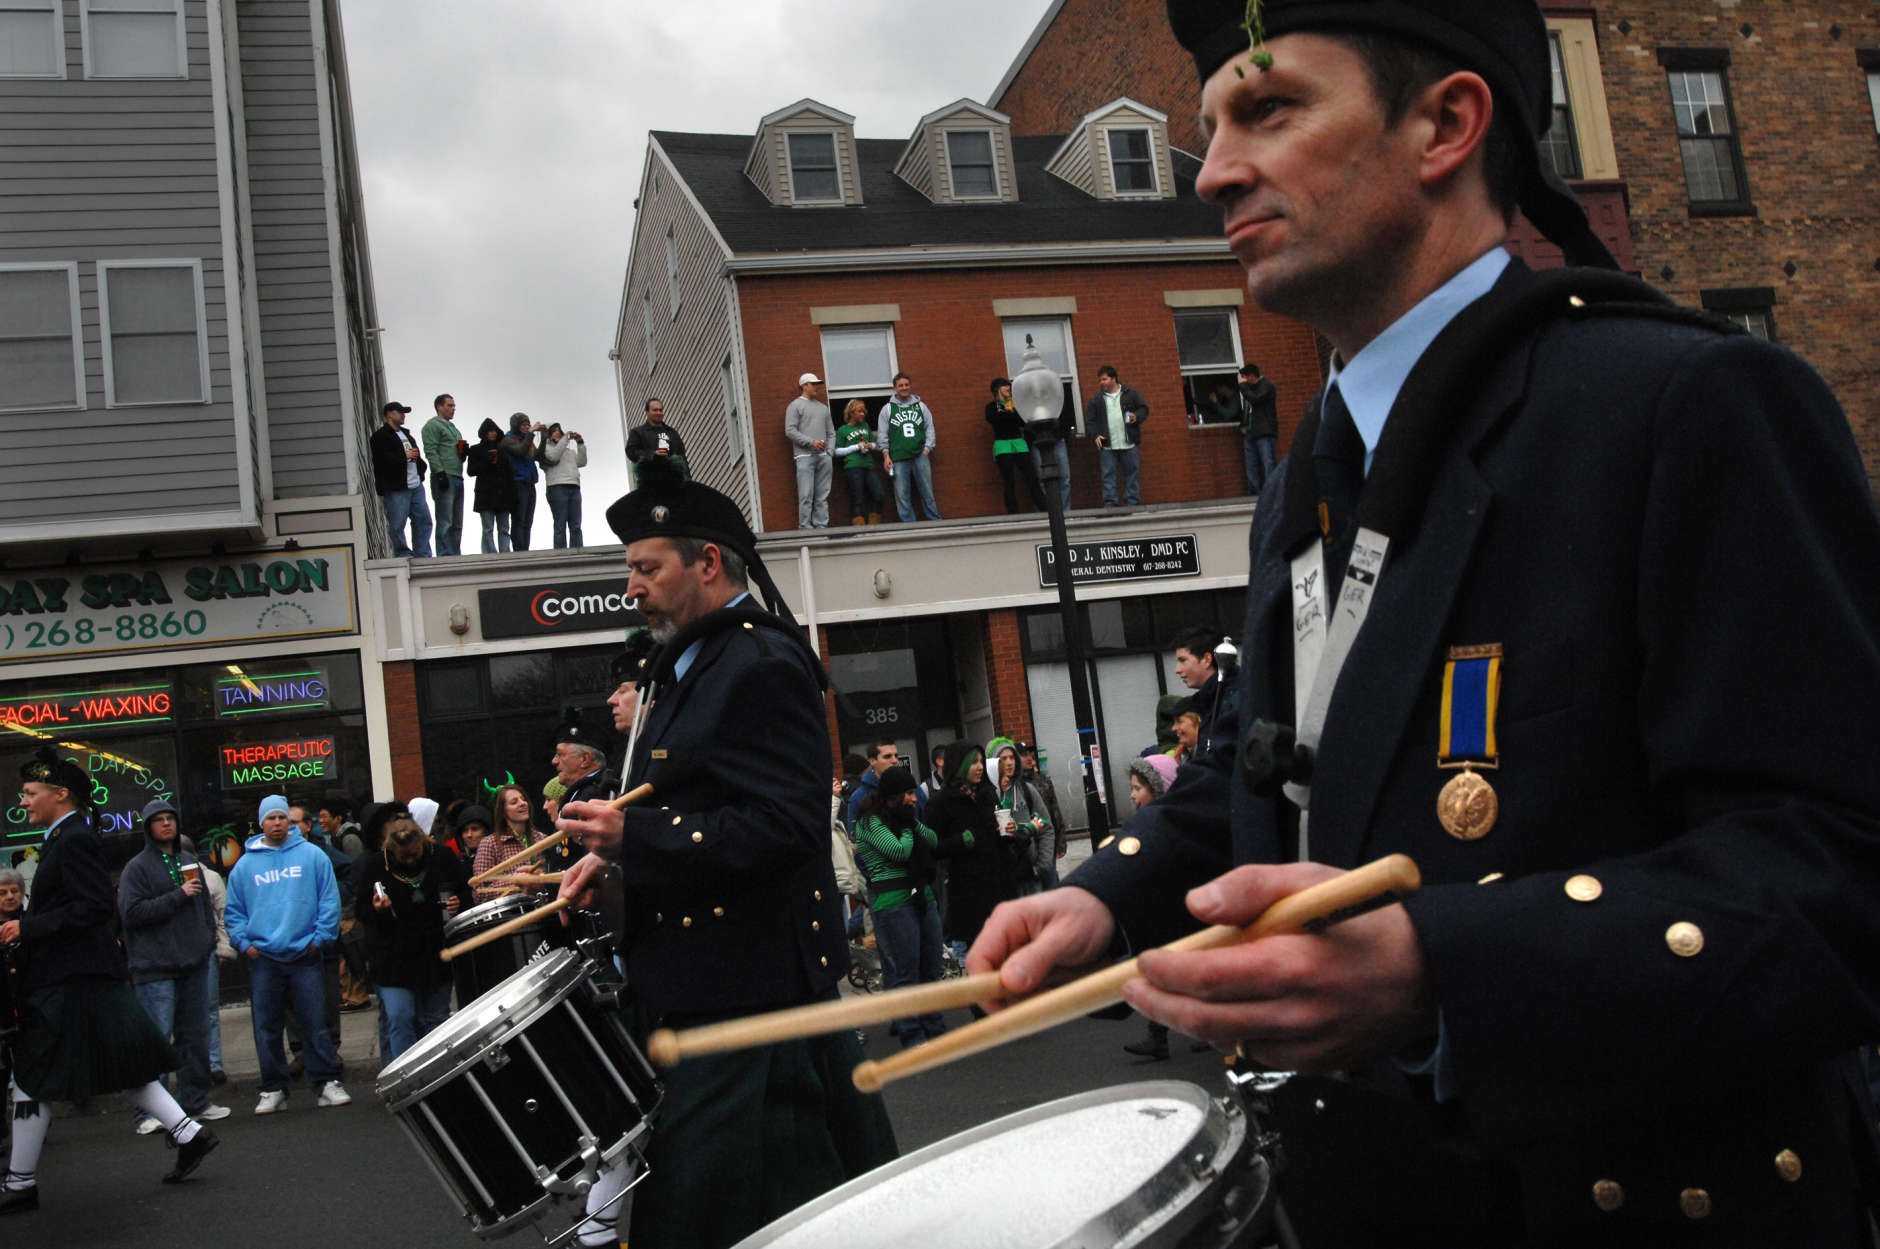 John D. O'Connor of Dublin, Ireland plays drums as he marches with the Irish Prison Service Pipe Band, of  Dublin, Ireland, during, the St. Patrick's Day Parade in South Boston, Sunday, March 16, 2008. (AP Photo/Josh Reynolds)